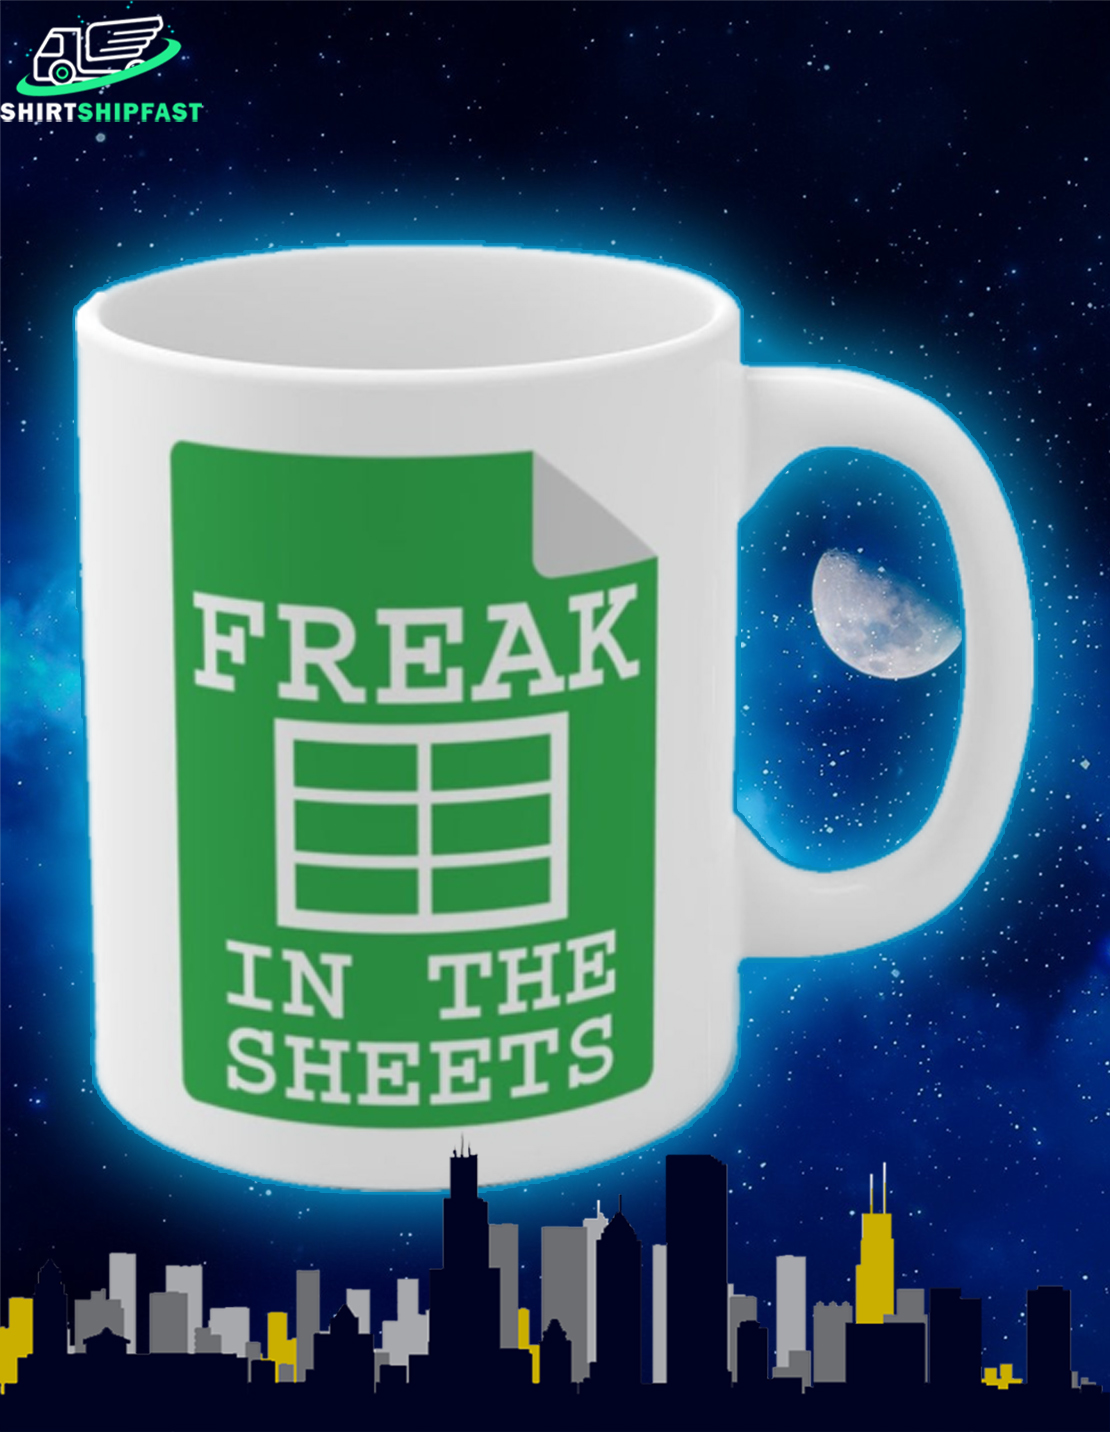 Freak in the sheets mug - Picture 2